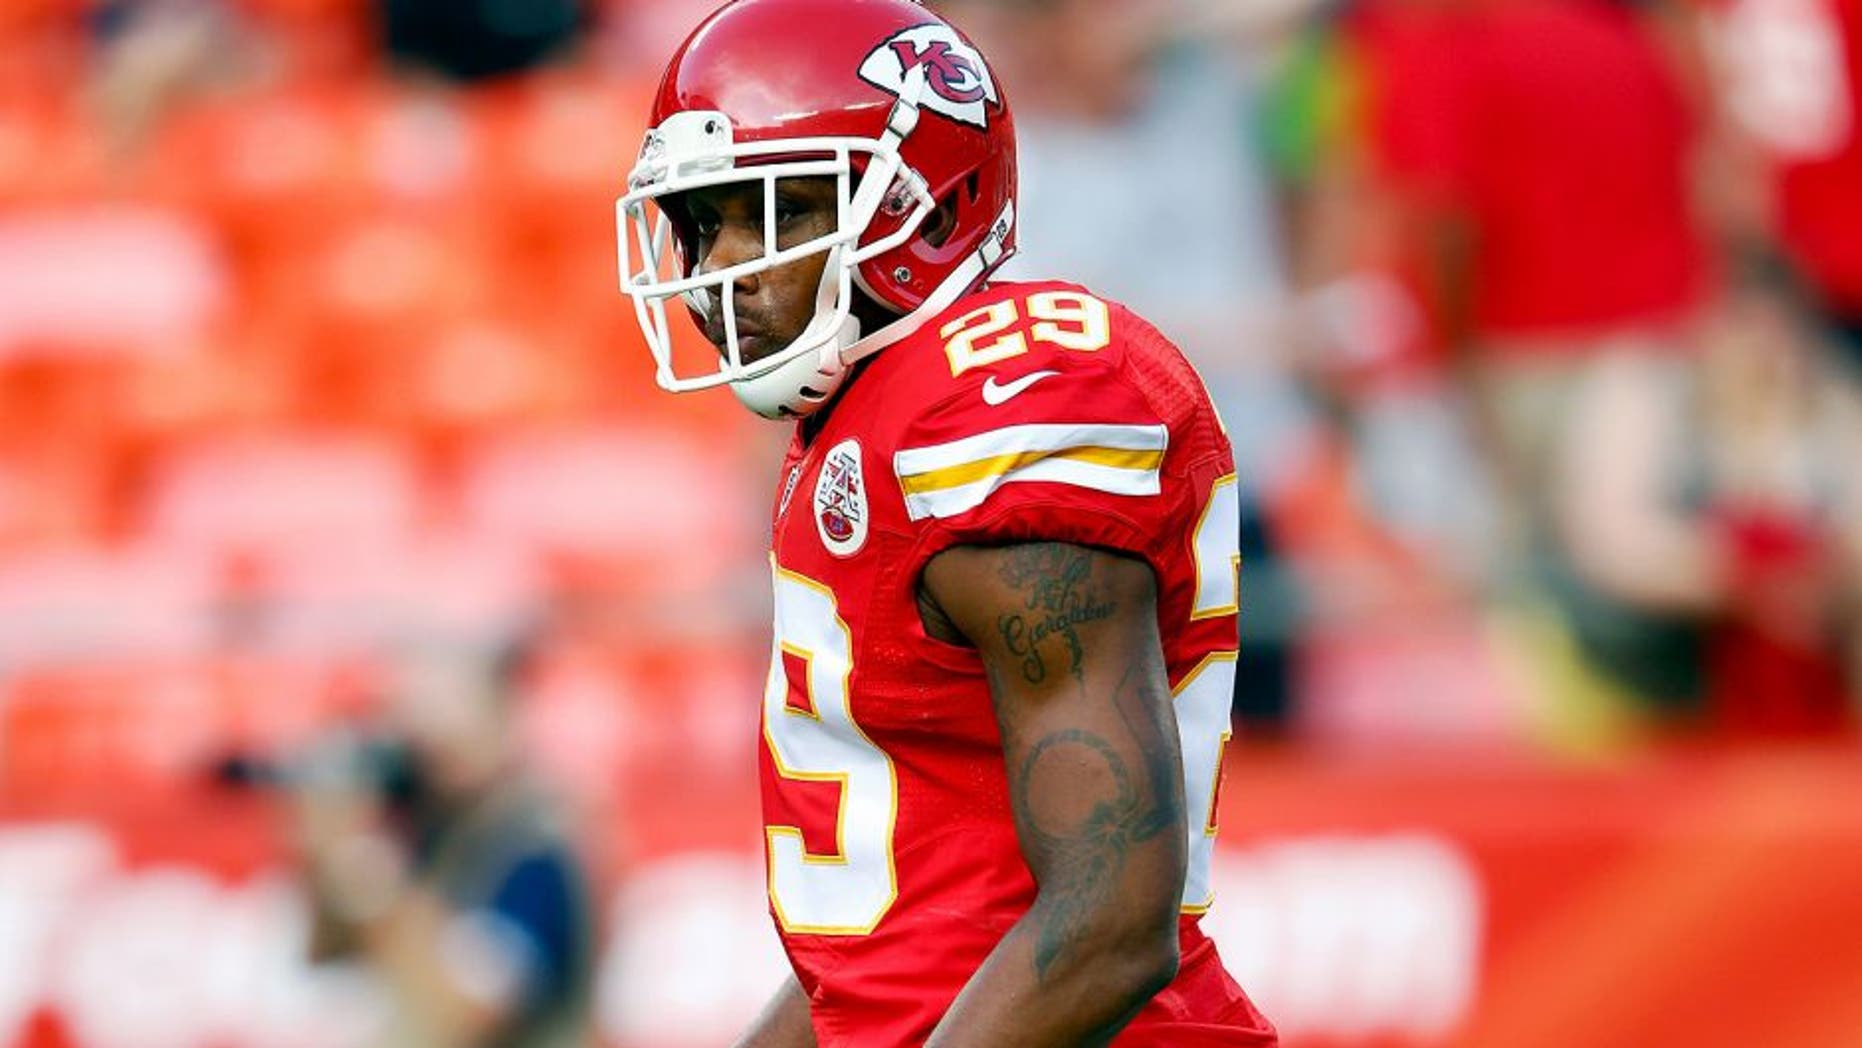 KANSAS CITY, MO - AUGUST 21: Strong safety Eric Berry #29 of the Kansas City Chiefs warms up prior to the preaseason game against the Seattle Seahawks at Arrowhead Stadium on August 21, 2015 in Kansas City, Missouri. (Photo by Jamie Squire/Getty Images)